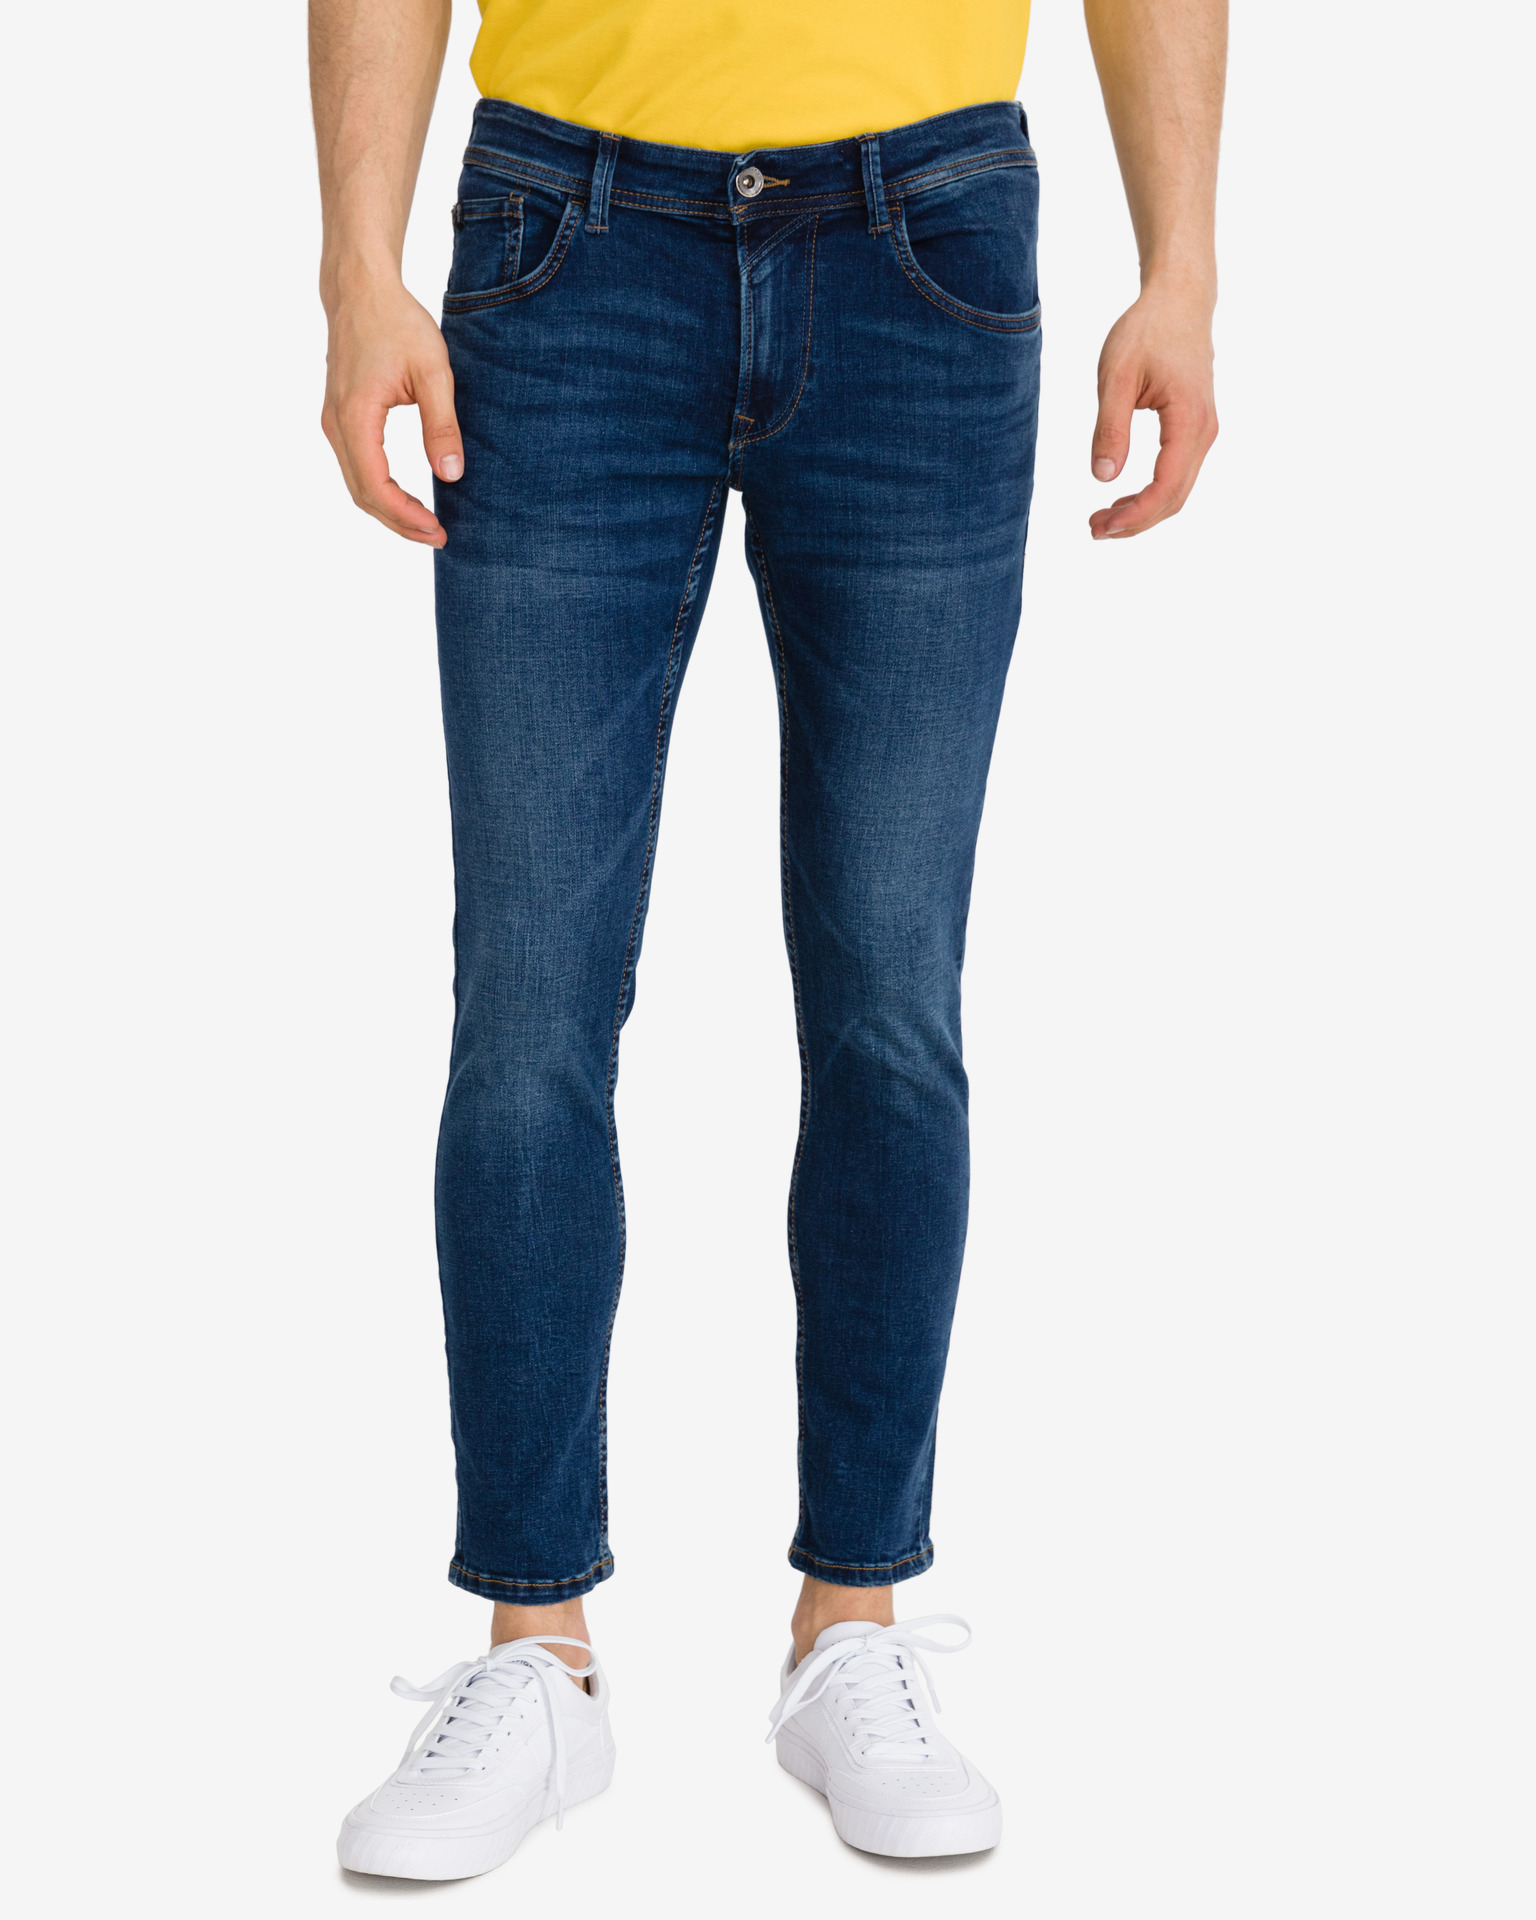 Culver Jeans Tom Tailor Denim